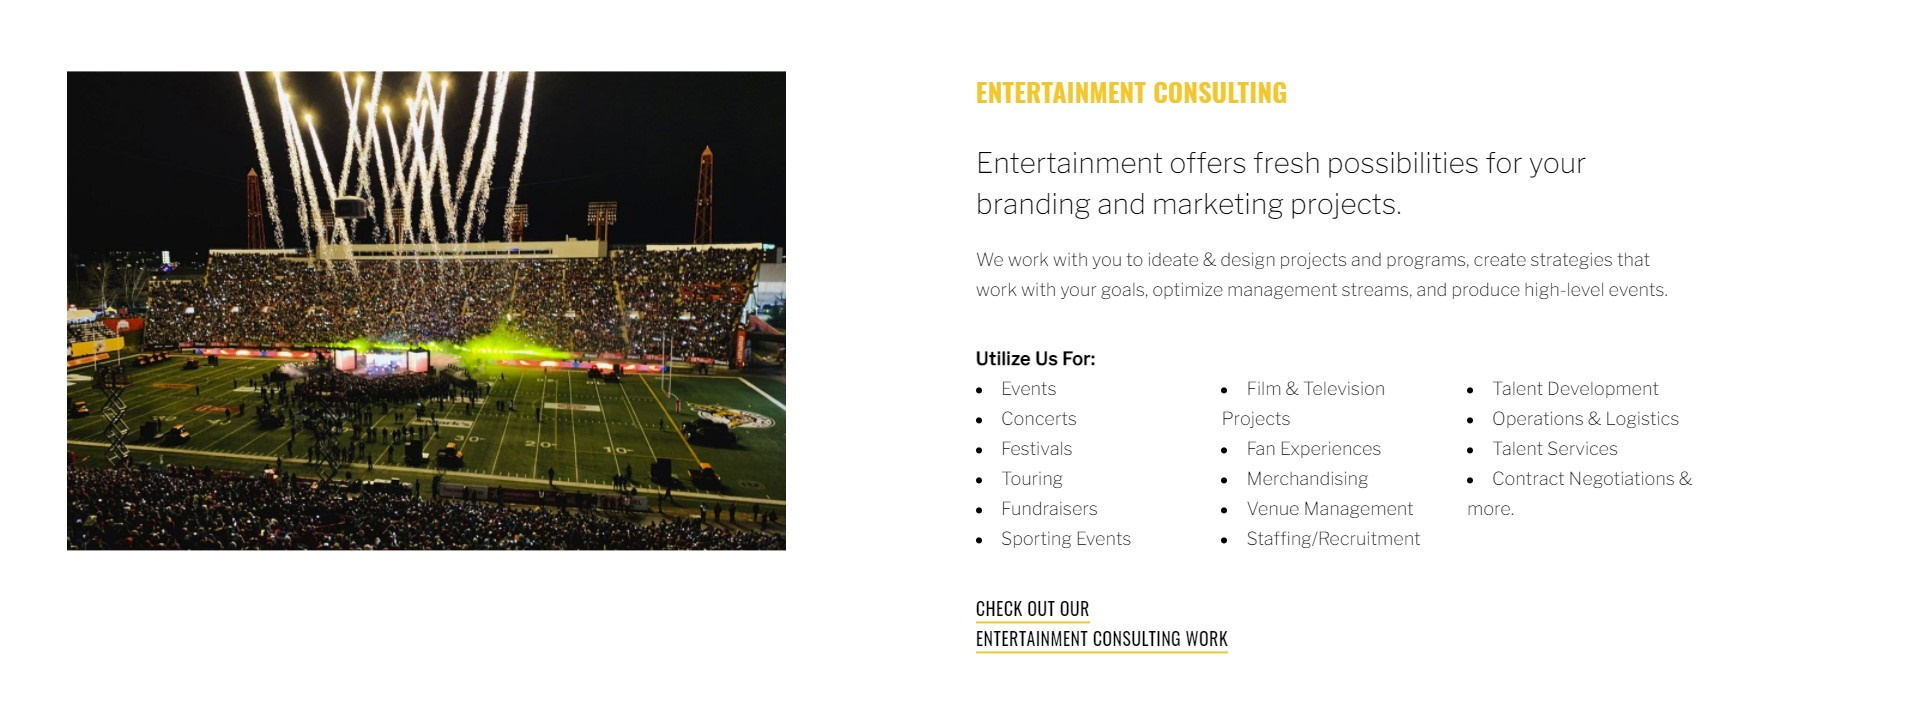 Entertainment Consulting